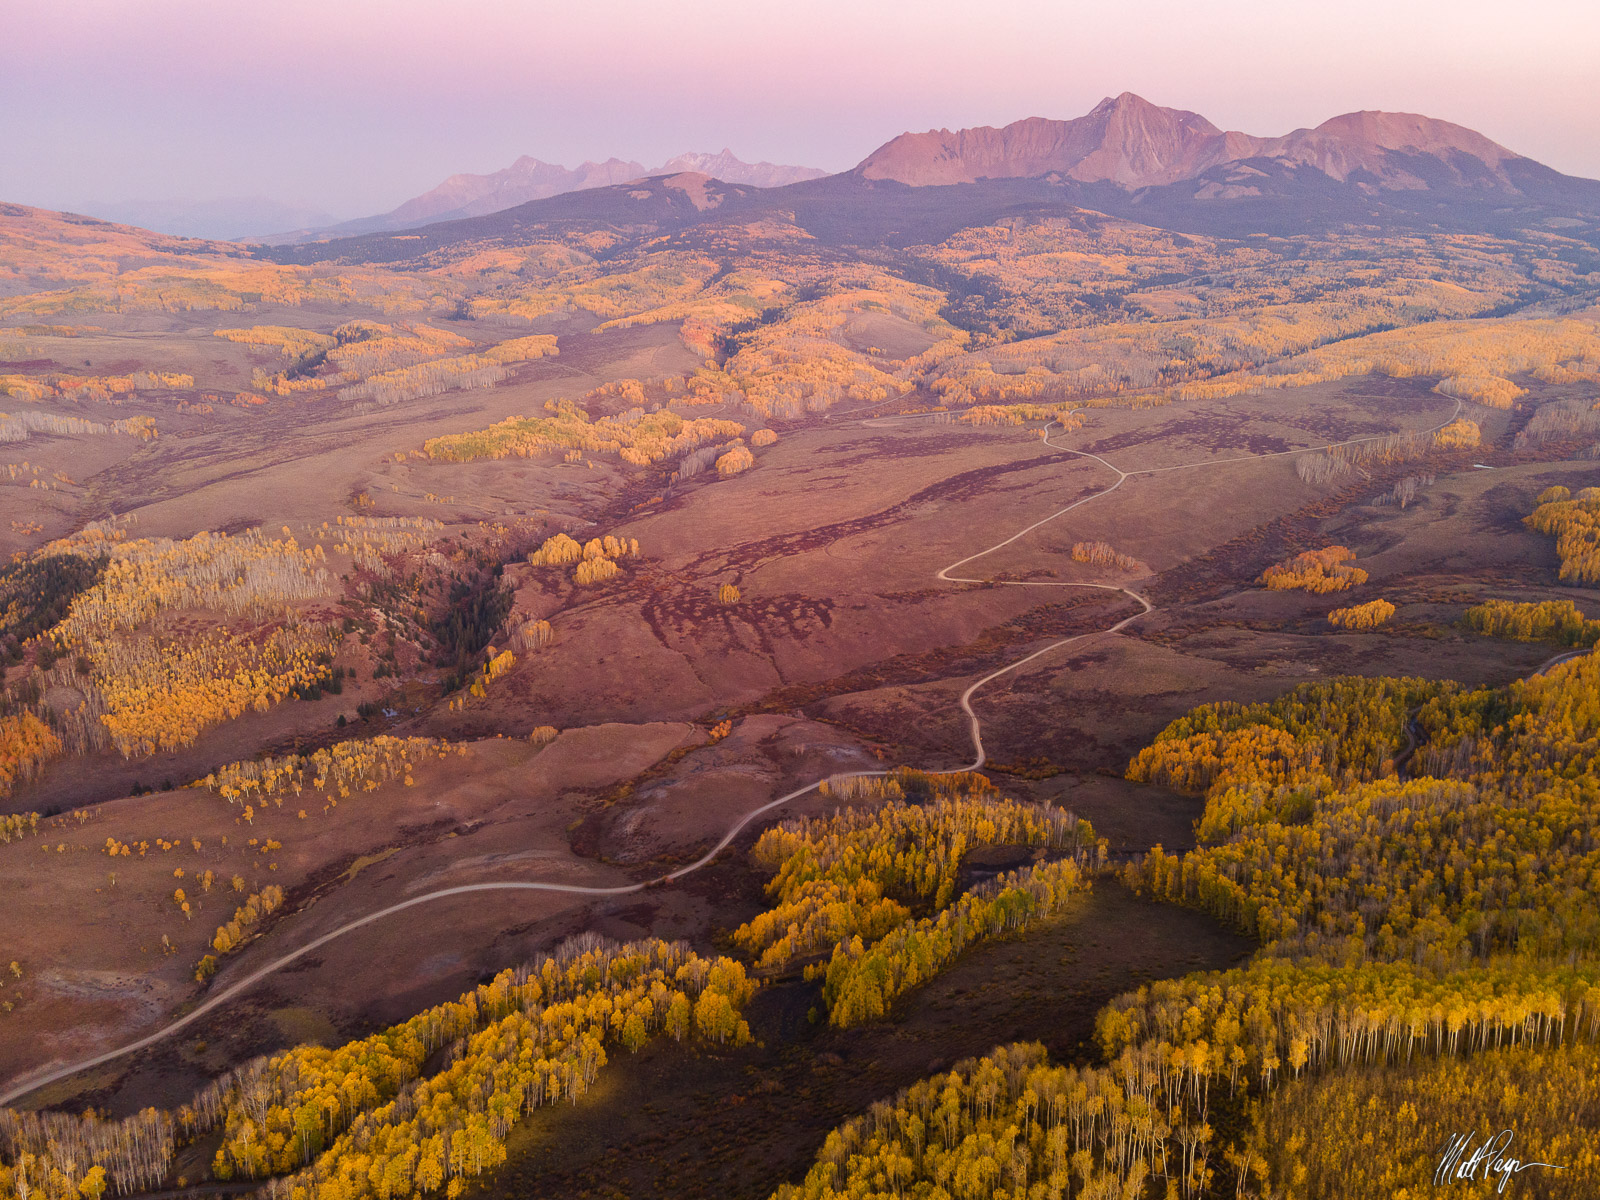 Good night from the San Juan Mountains of Colorado in autumn at sunset. Photo © copyright by Matt Payne.